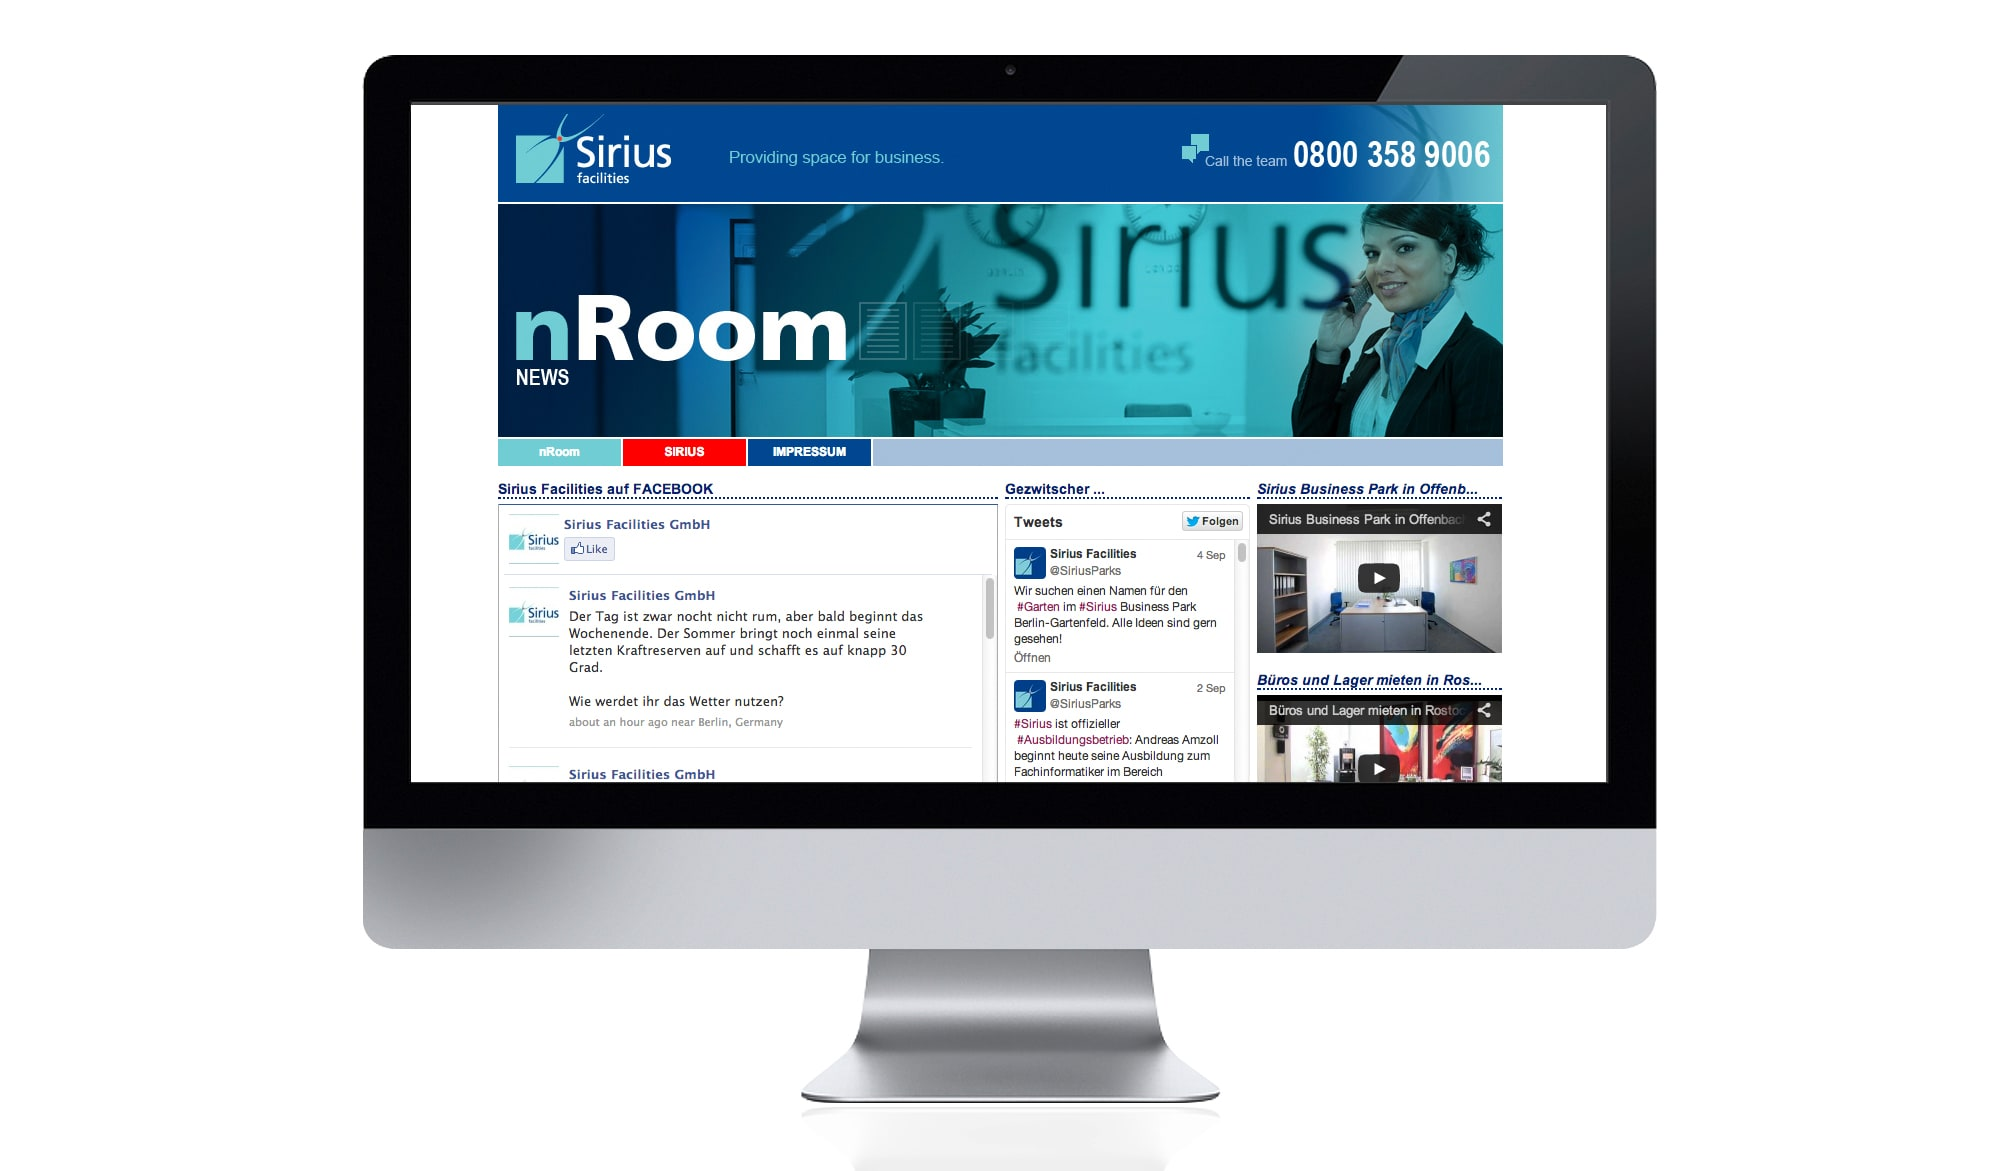 Sirius Facilities website - news page